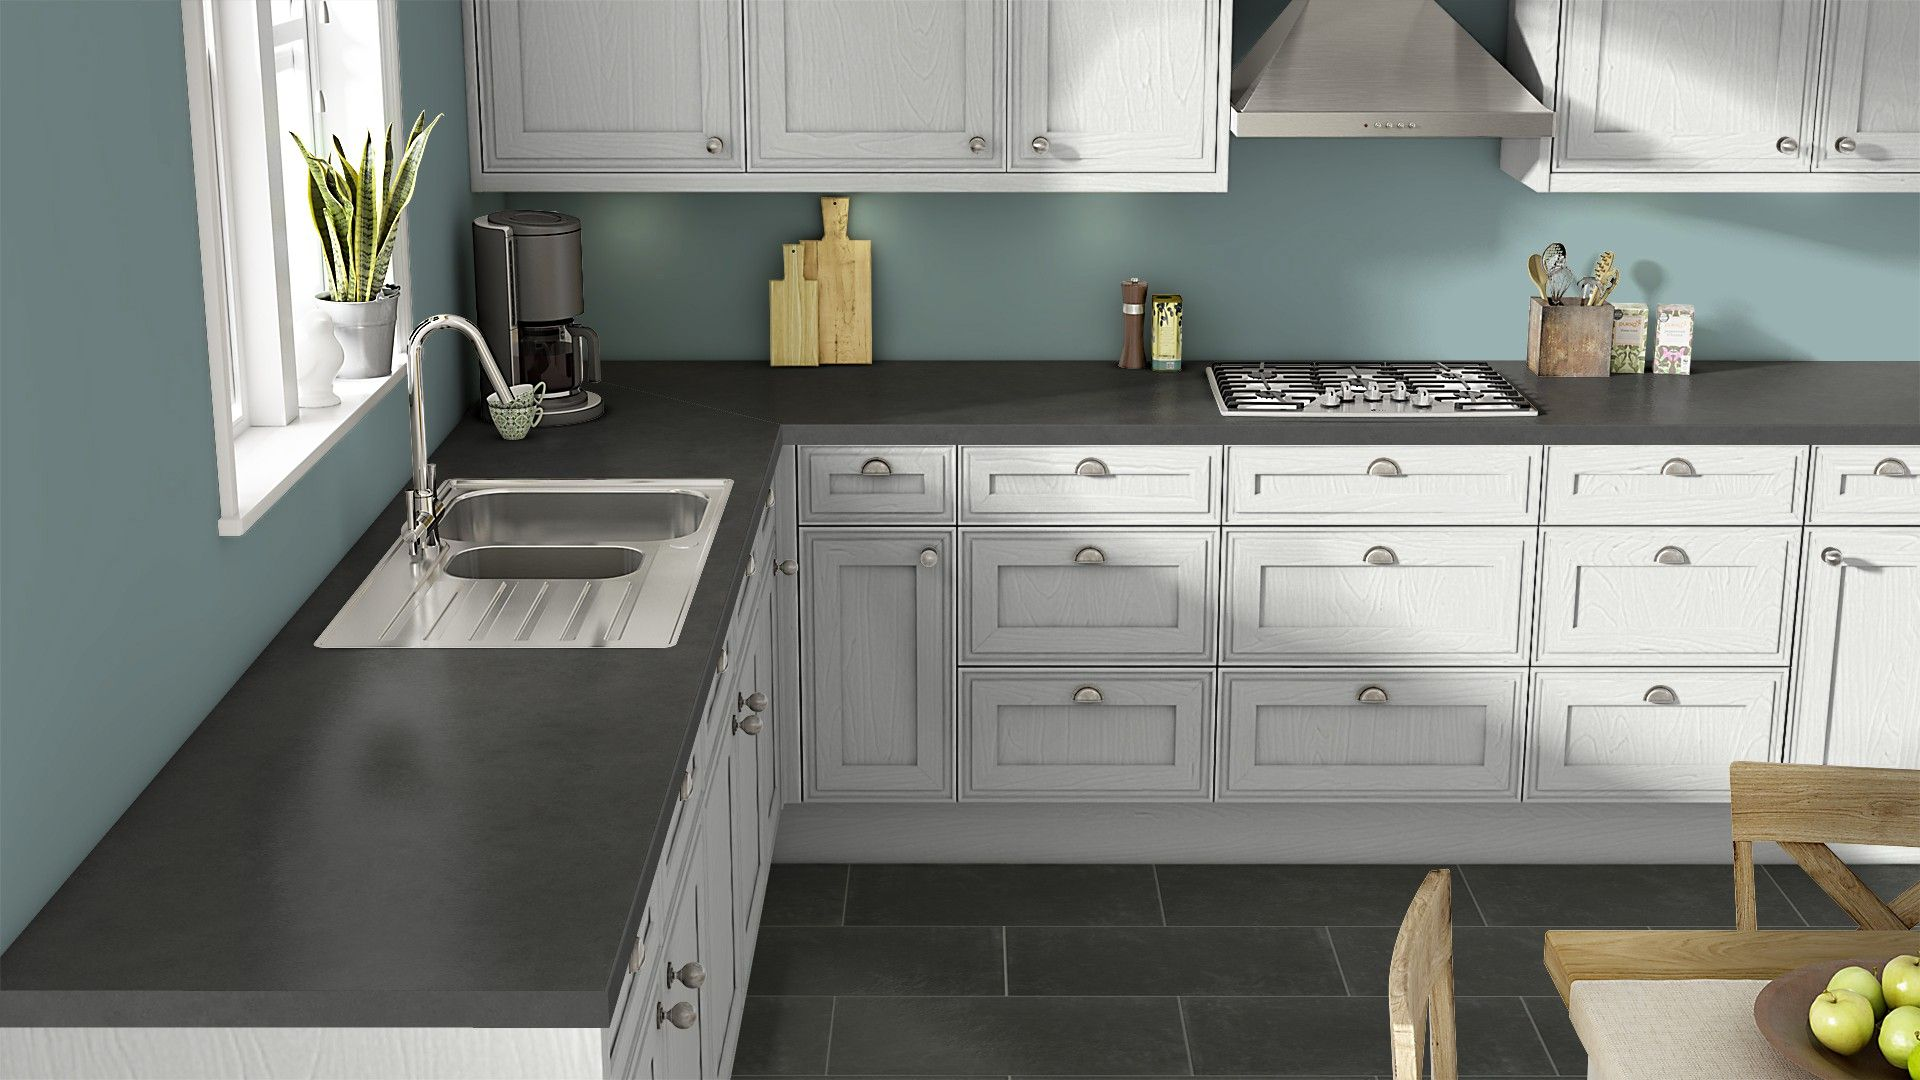 Get Inspired For Your Kitchen Renovation With Wilsonart S Free Visualizer Visualizapro Counter Is Oiled Soapstone Standard Laminate